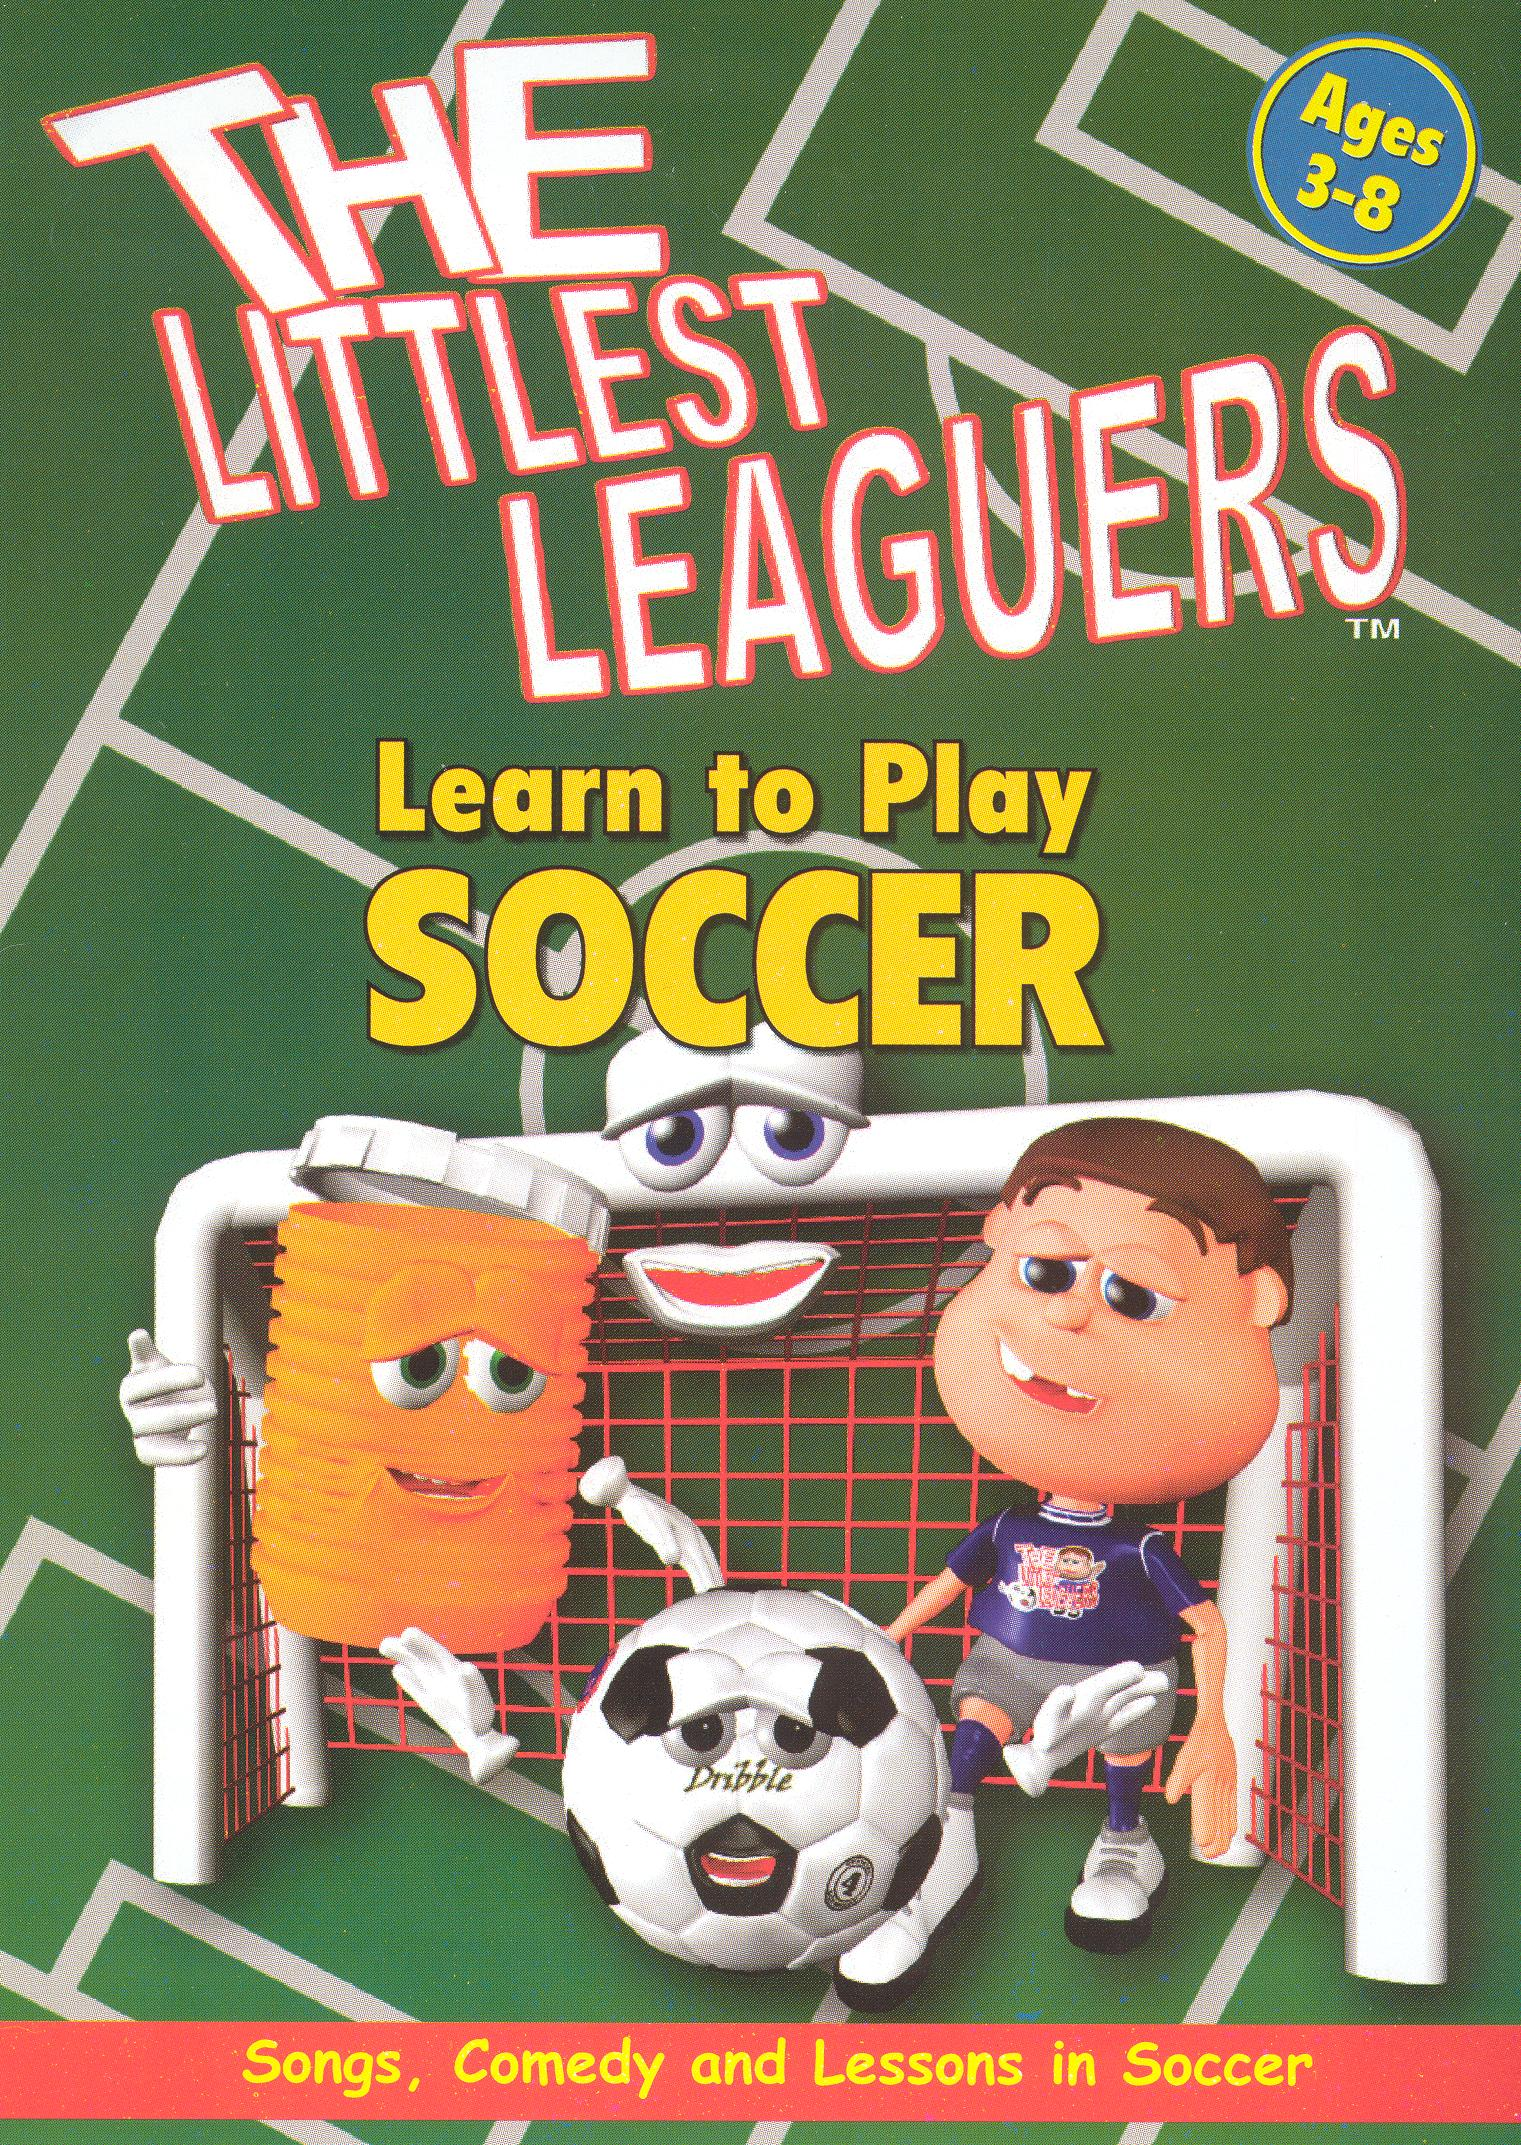 The Littlest Leaguers: Learn to Play Soccer